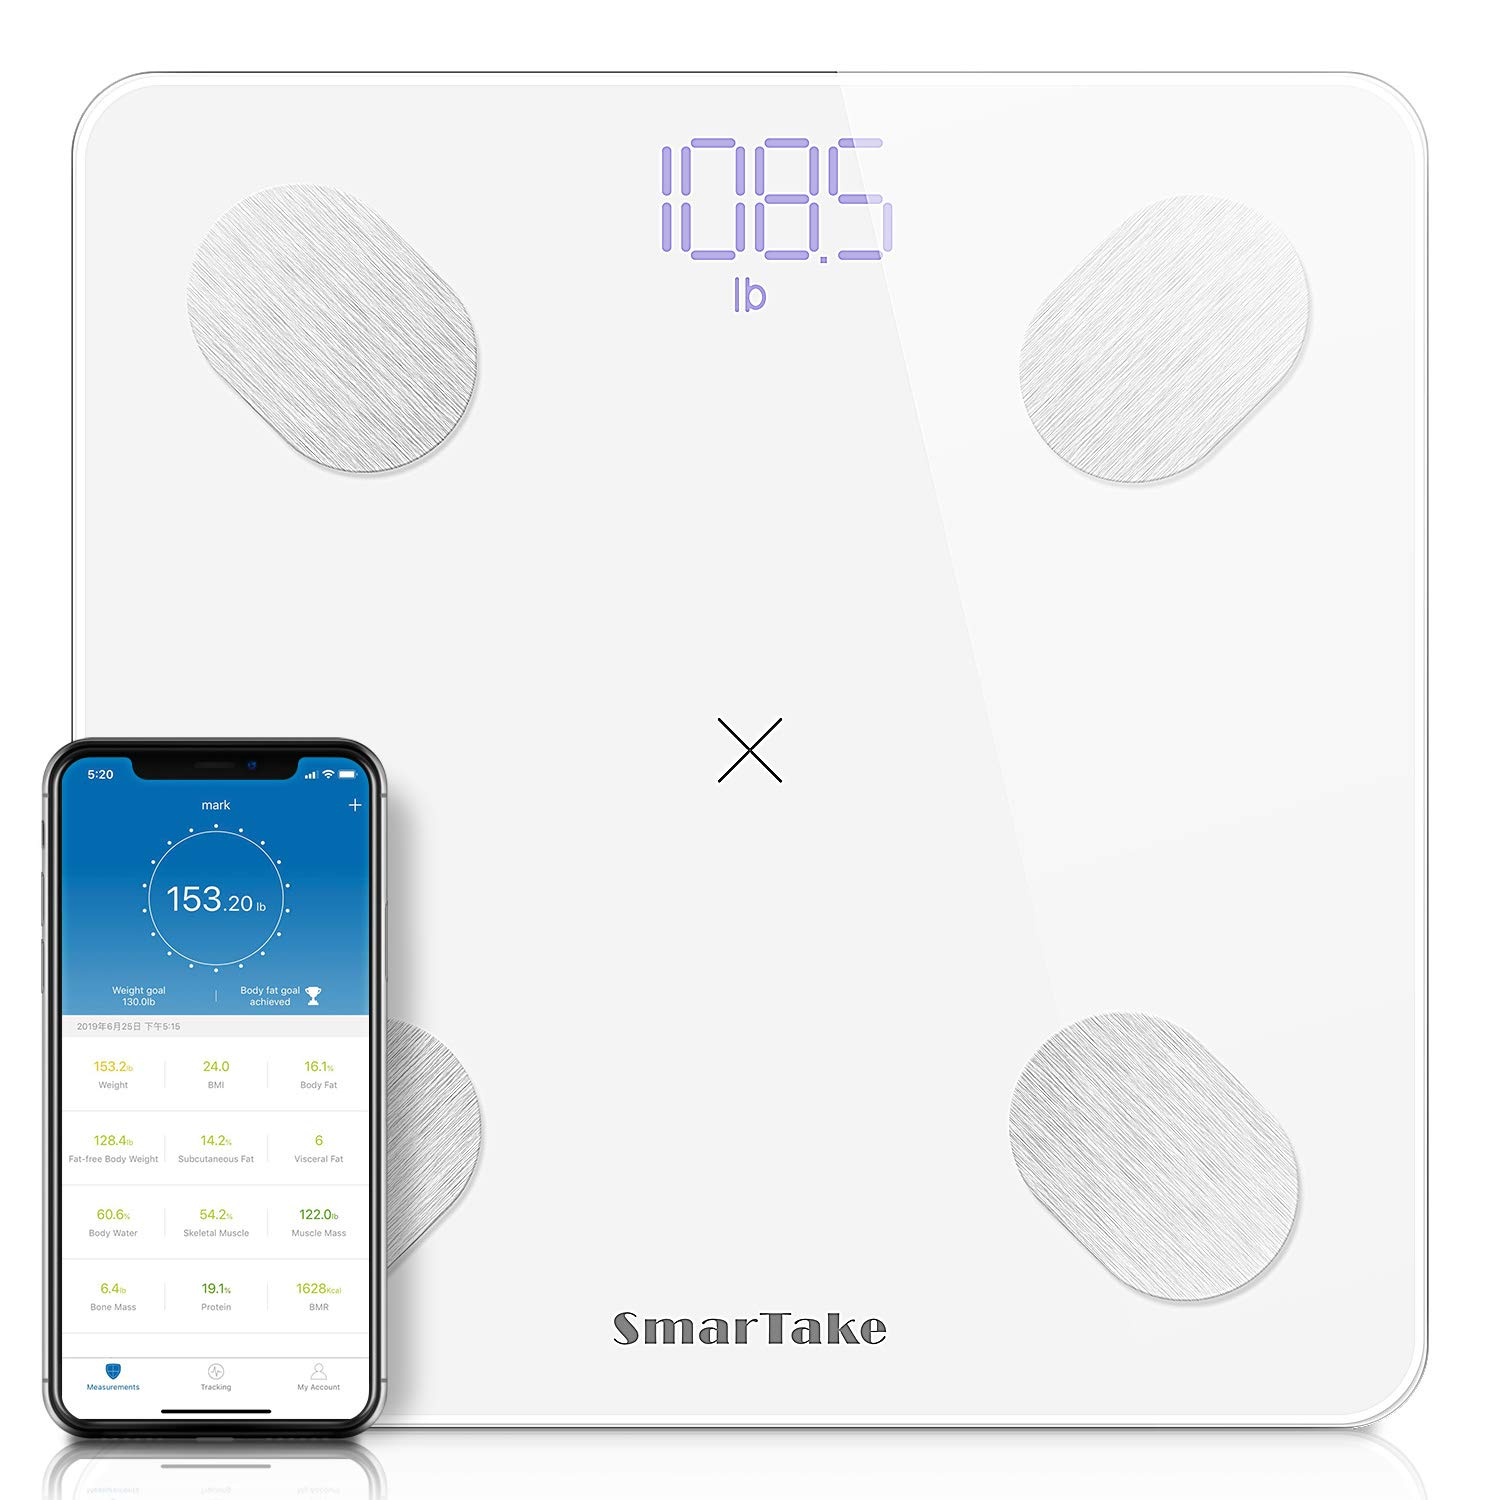 [Upgraded] SMARTAKE Bluetooth Body Fat Scale, 11.8 x 11.8 Inches Precision Digital Bathroom Weight Scale Body Health Monitor with Smart App, Body Composition Analyzer with 13 Key Data, White